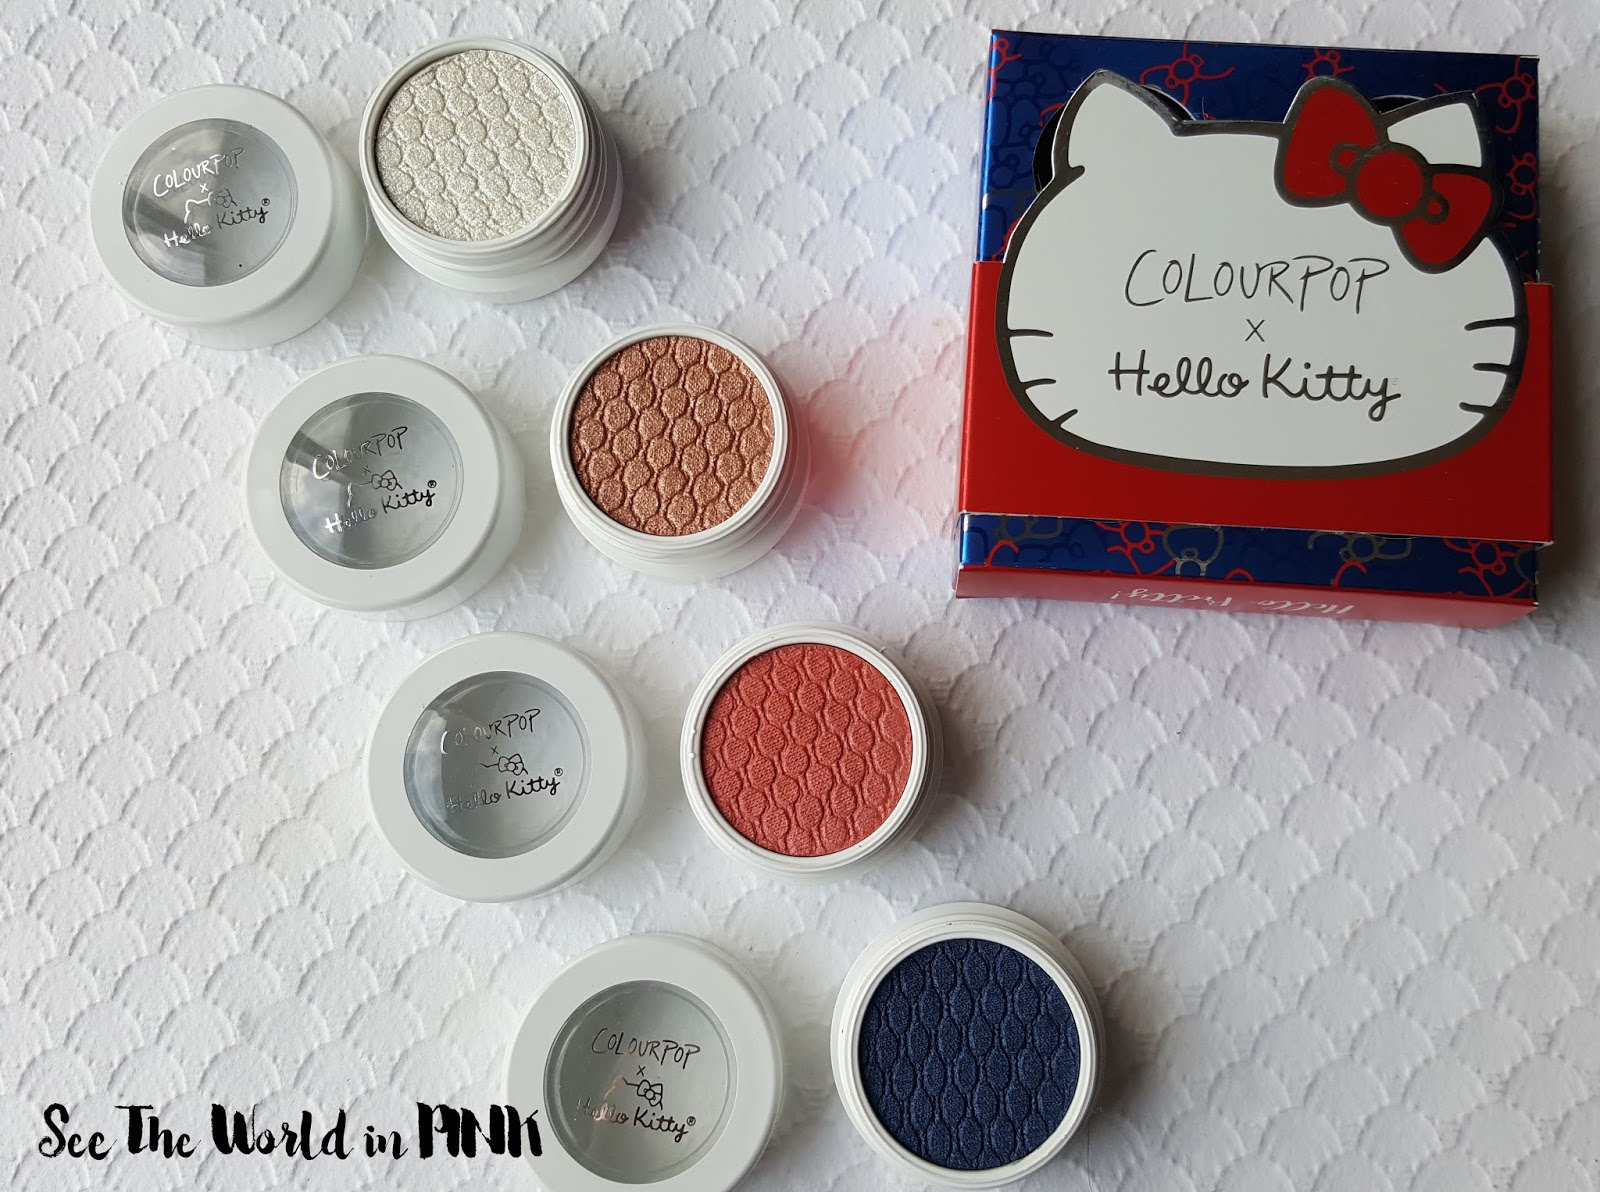 Colourpop Hello Kitty Collection - Review, Swatches and a Makeup Look!